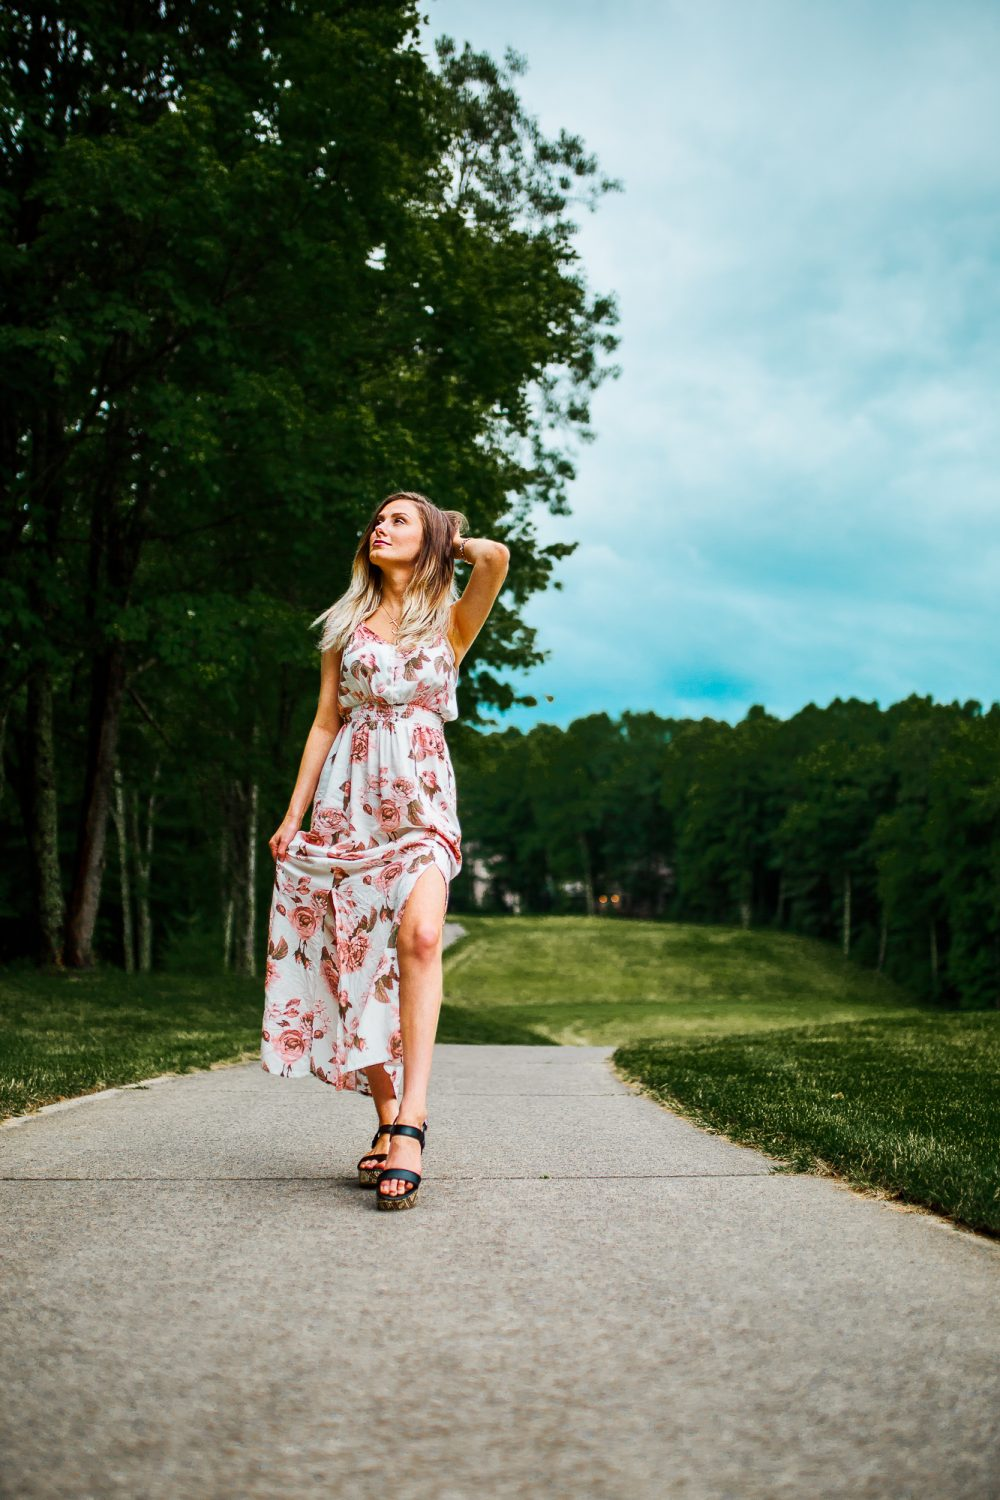 Romantic Rose Print Maxi Dress | Elegant Summer Fashion